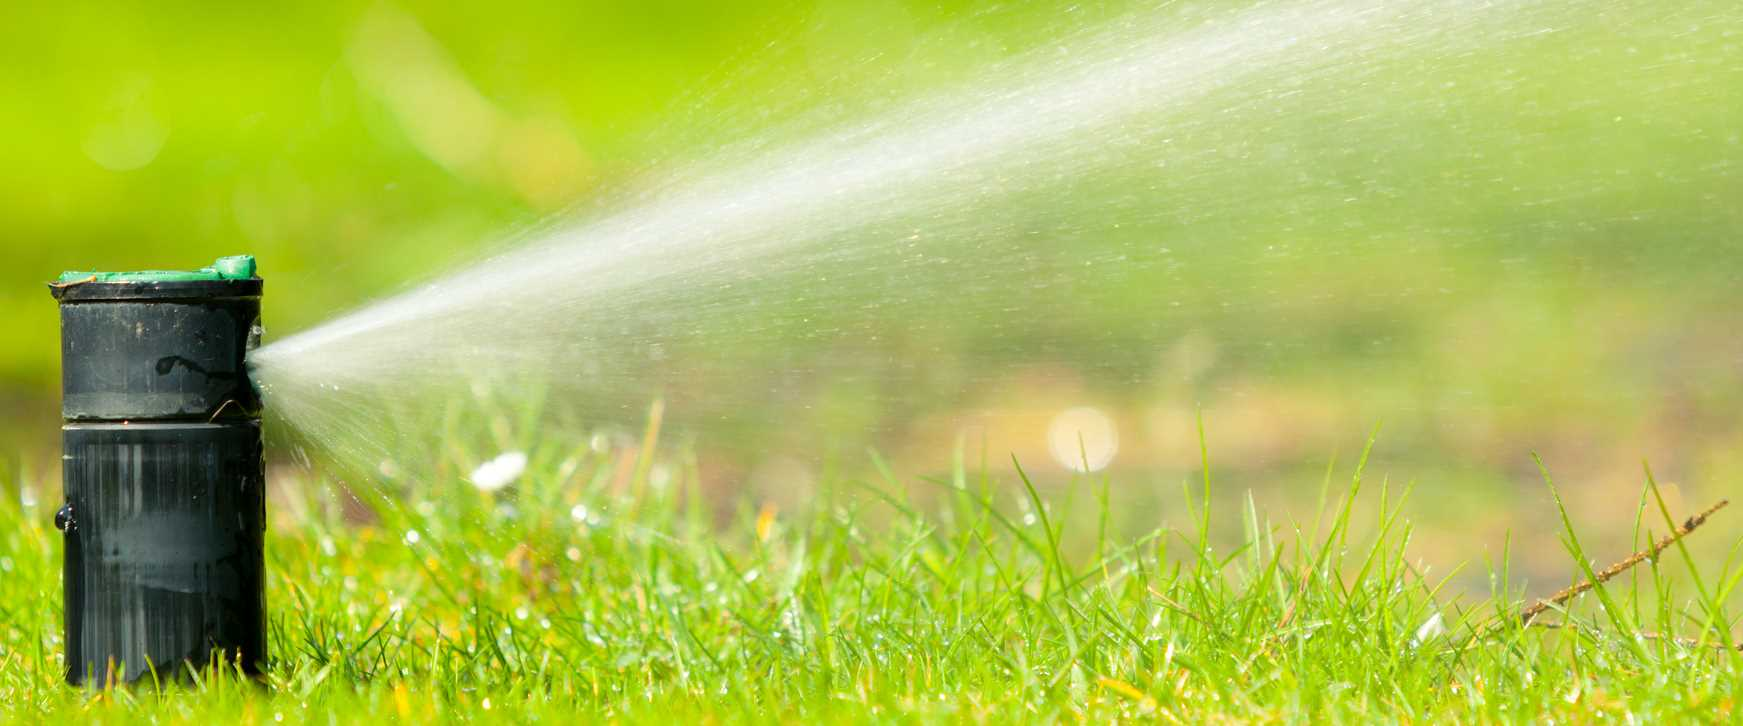 Irrigation and Drainage Services - Lawn Irrigation Springfield MO